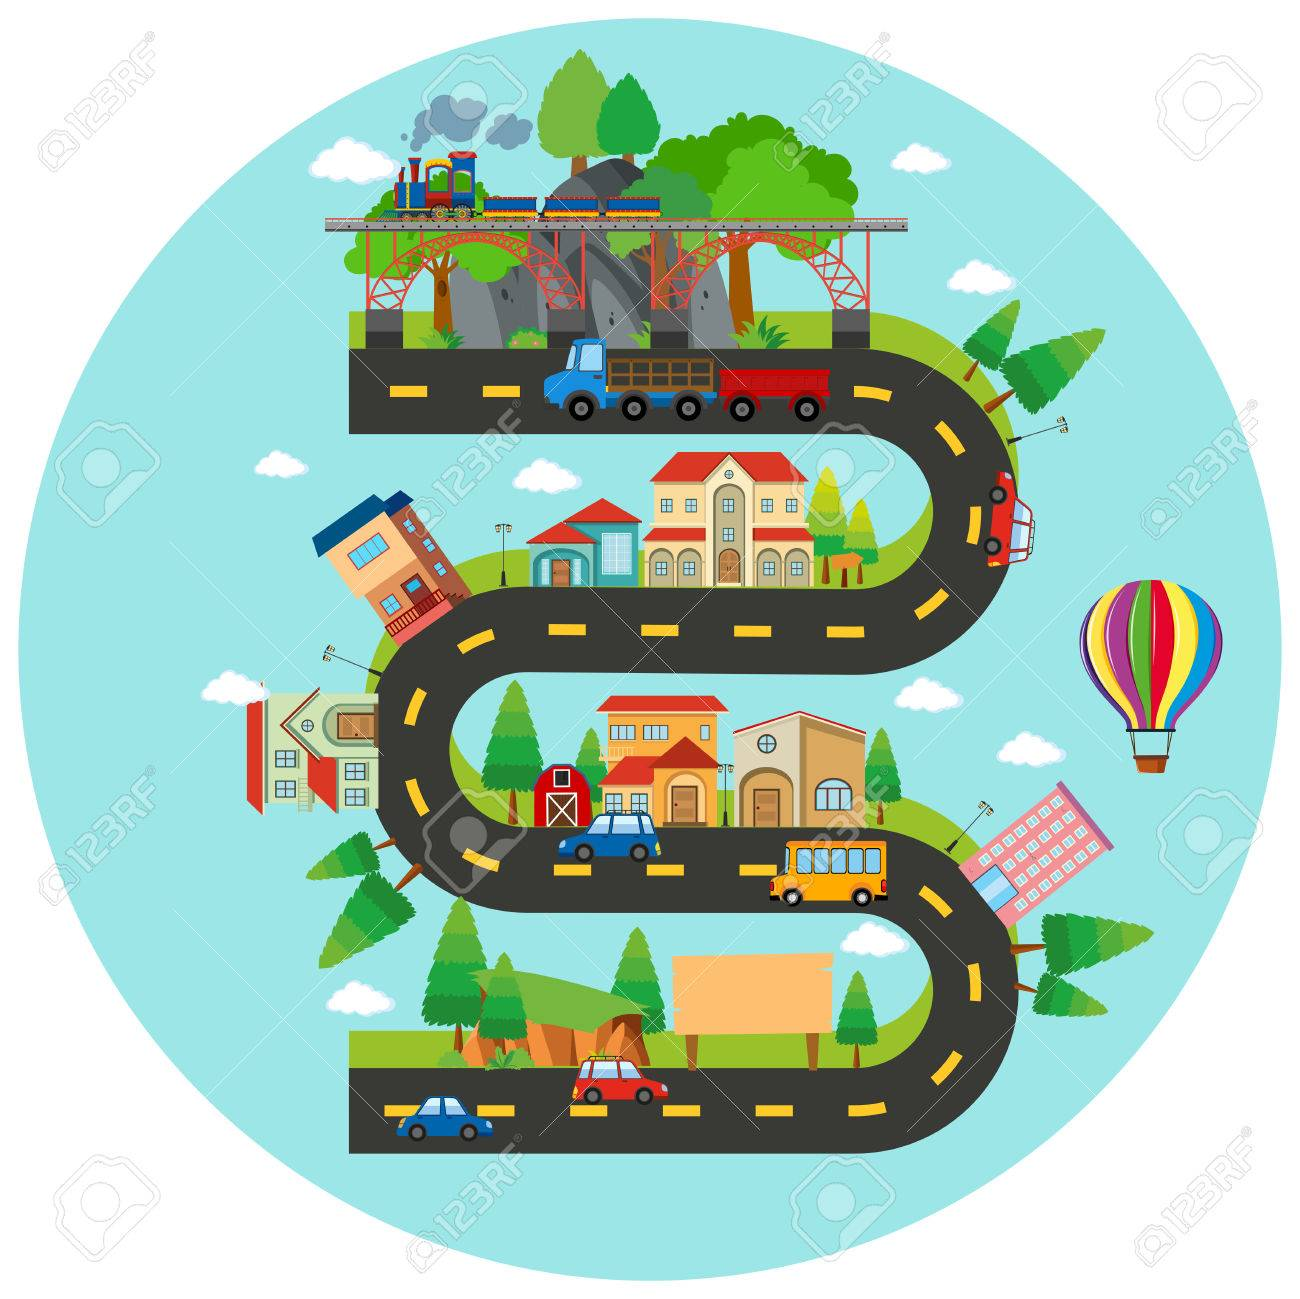 Infographic winding road and buildings illustration Stock Vector - 70917921